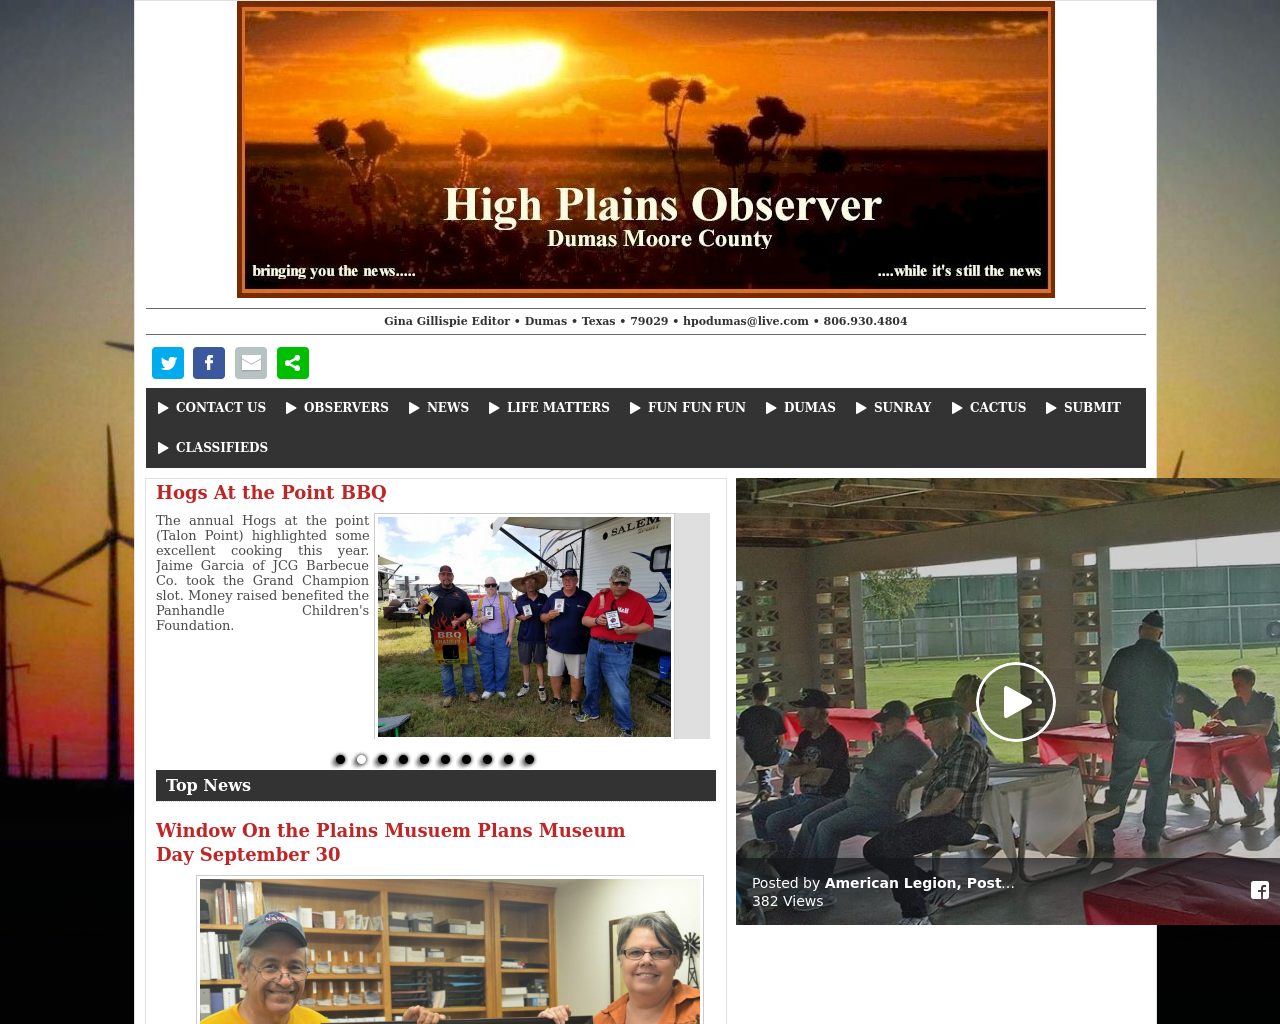 High-Plains-Observer-Dumas-Moore-County-Advertising-Reviews-Pricing